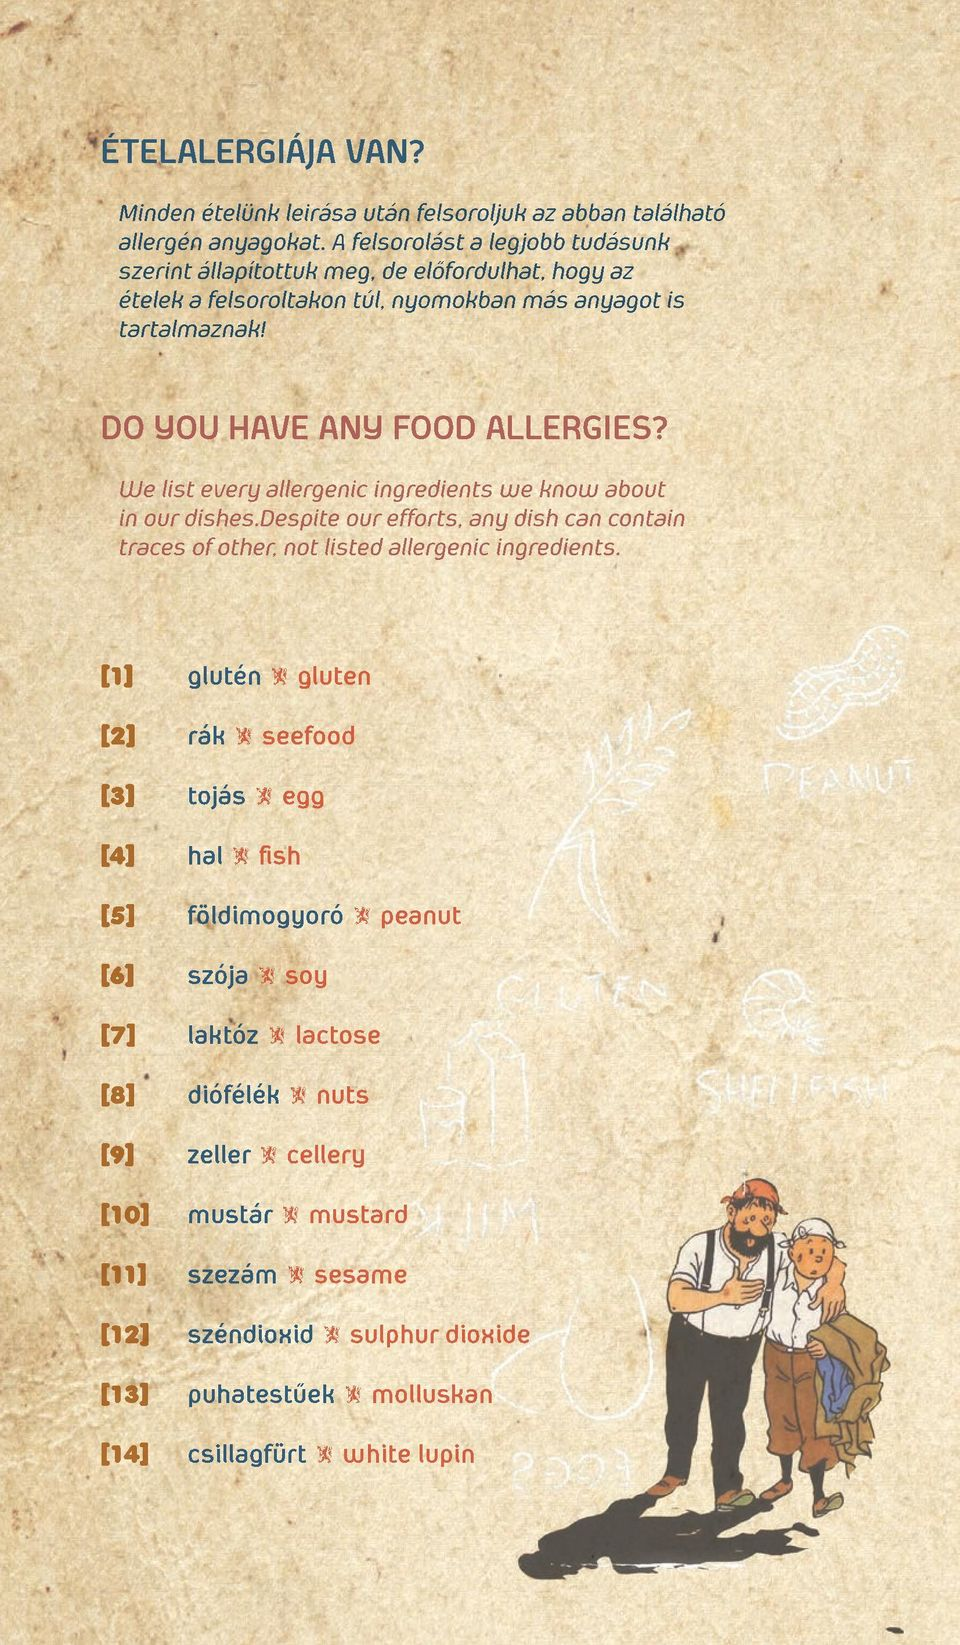 DO YOU HAVE ANY FOOD ALLERGIES? We list every allergenic ingredients we know about in our dishes.